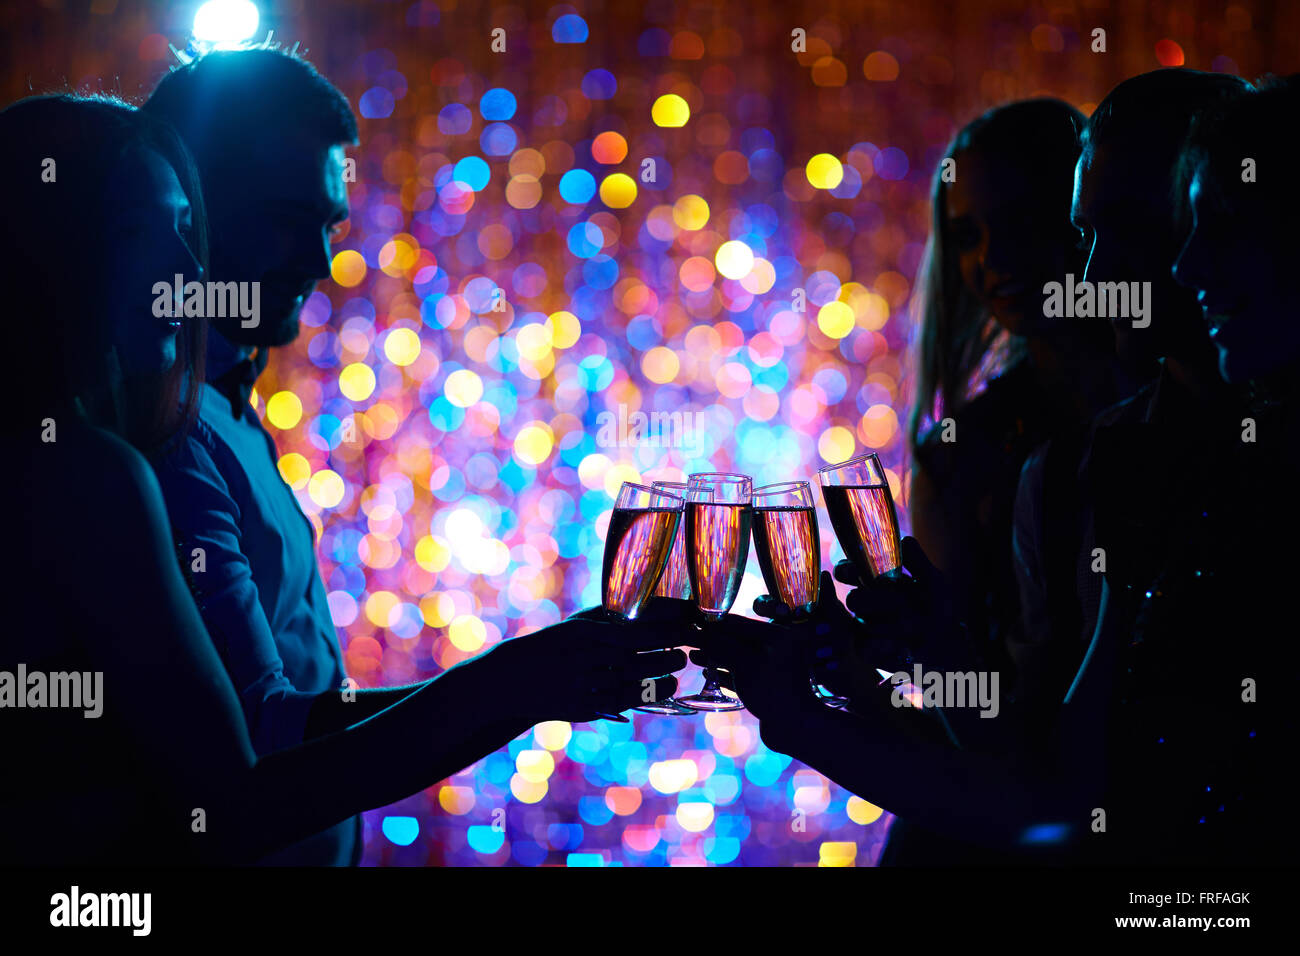 Toasting at party - Stock Image